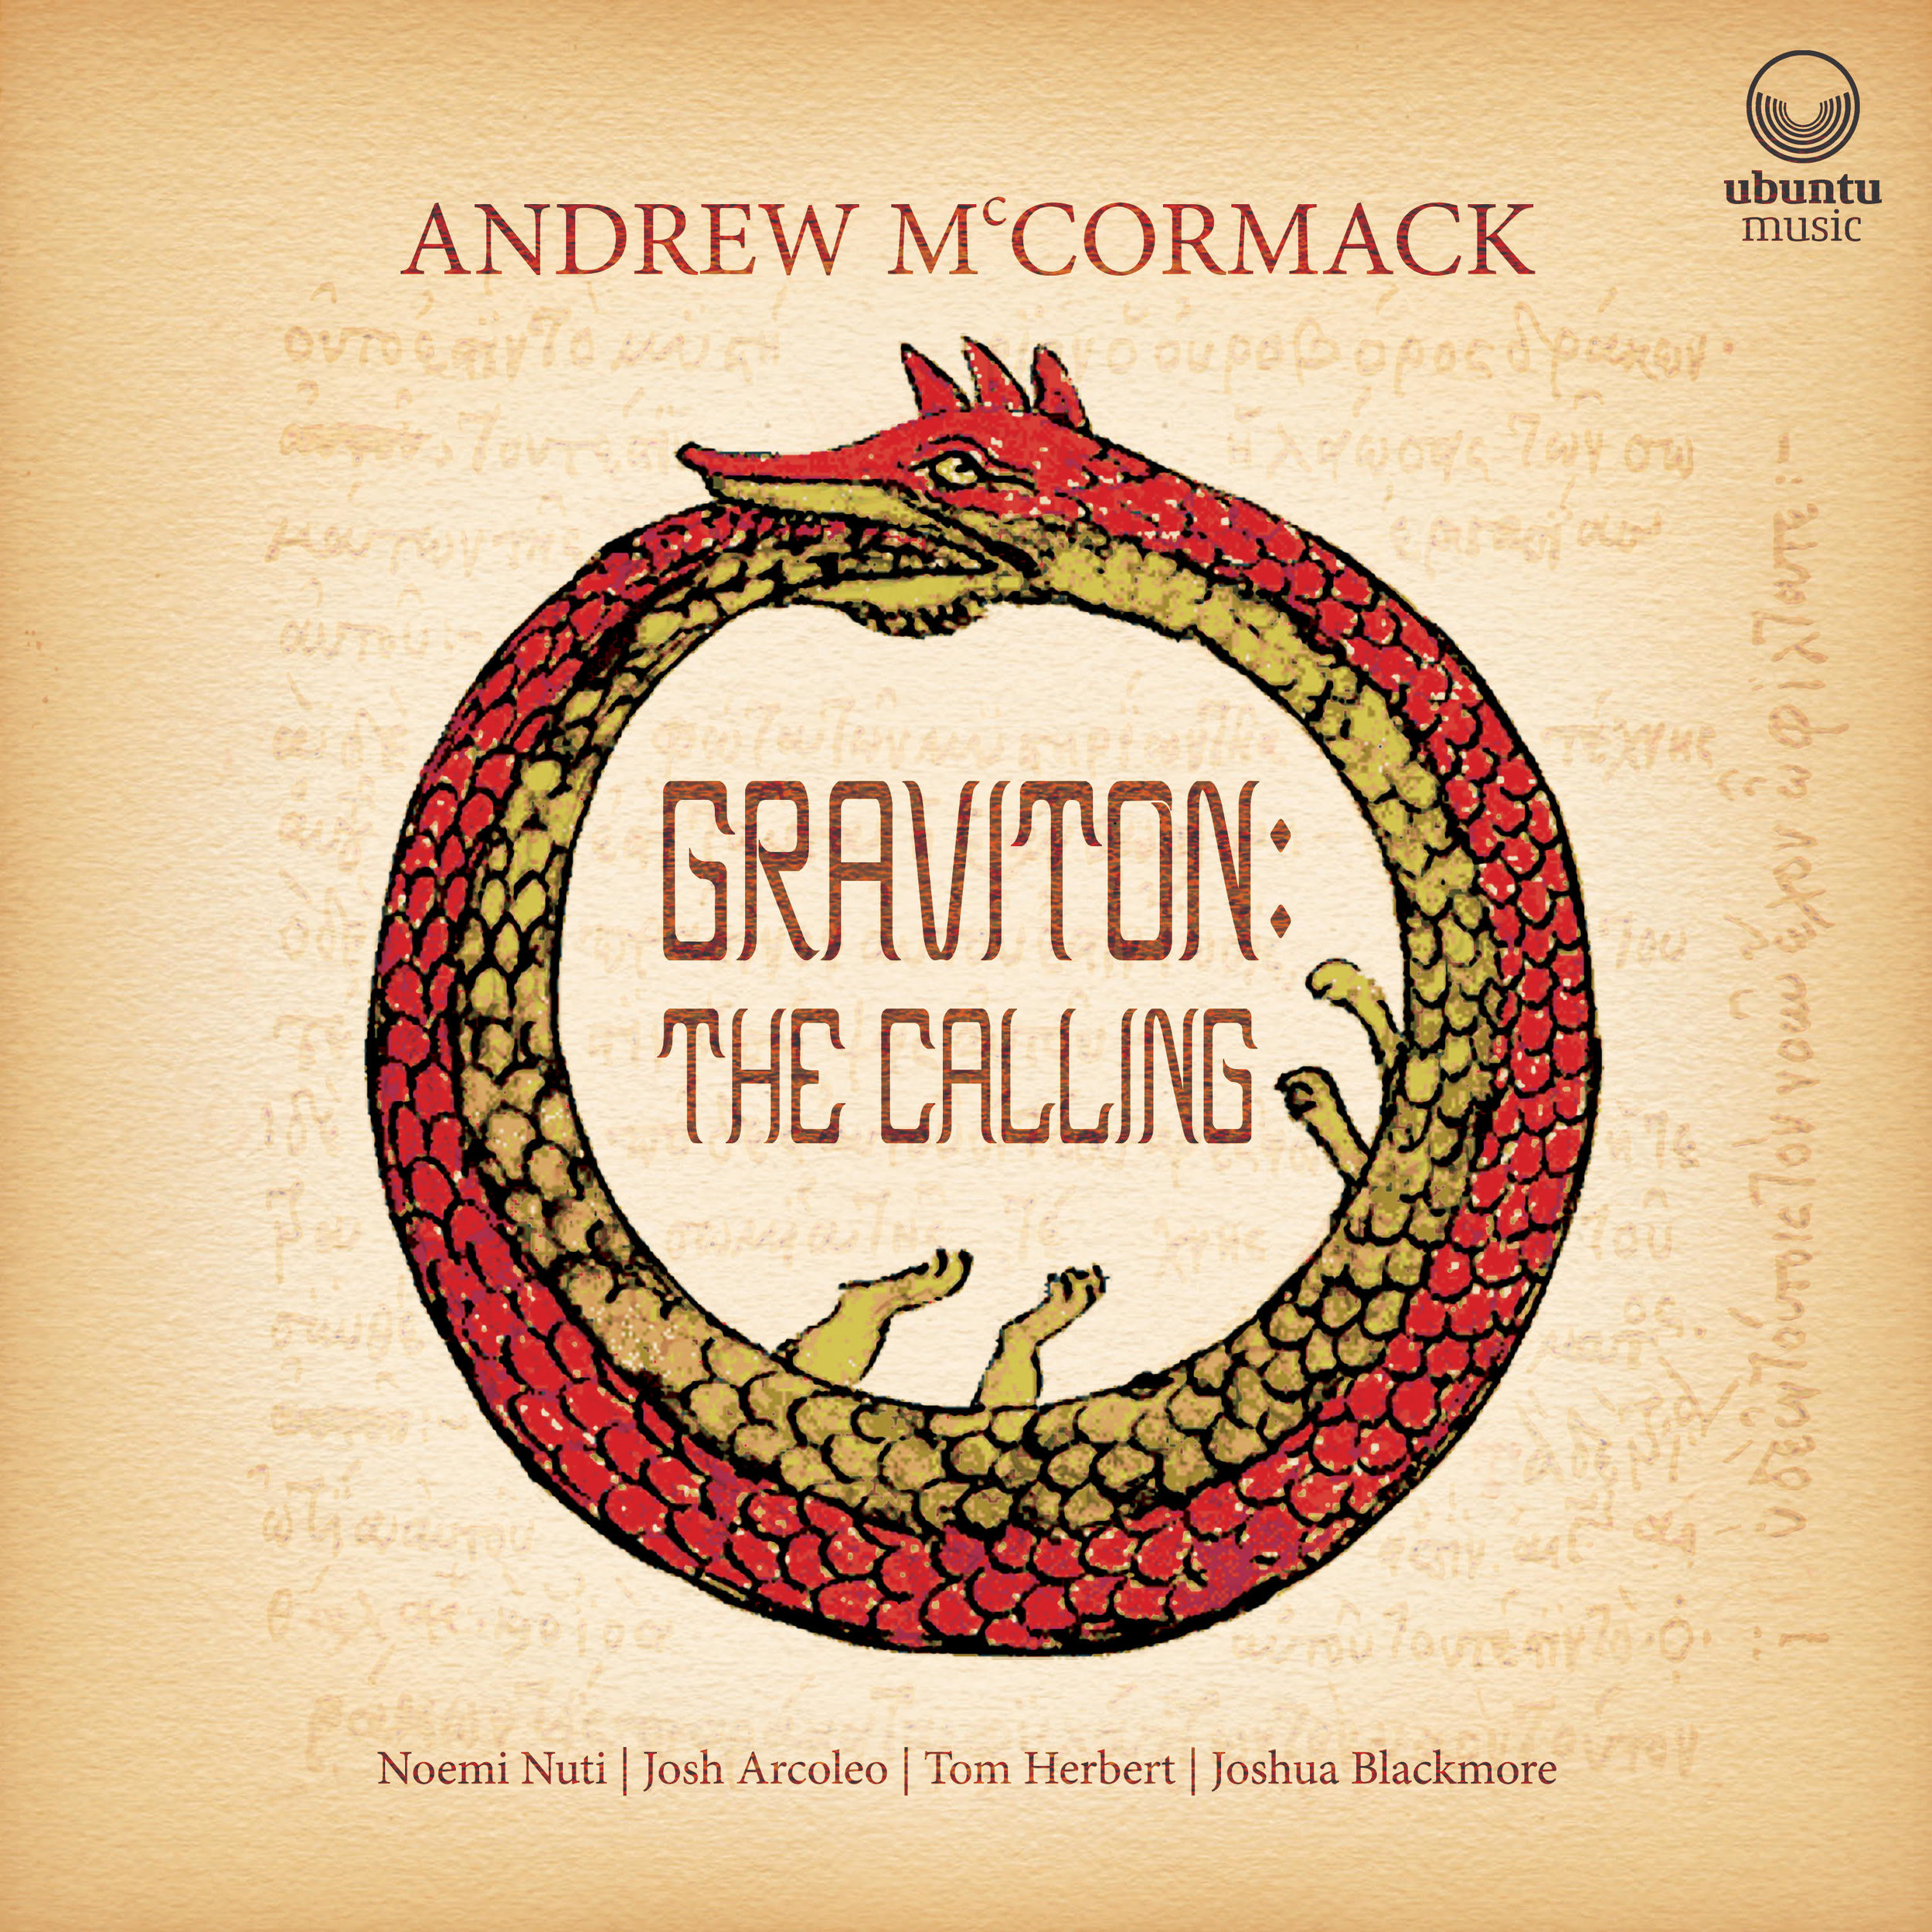 UBU0025_A McCormack_Graviton_The Calling HHi Res Cover_3000x3000.jpg